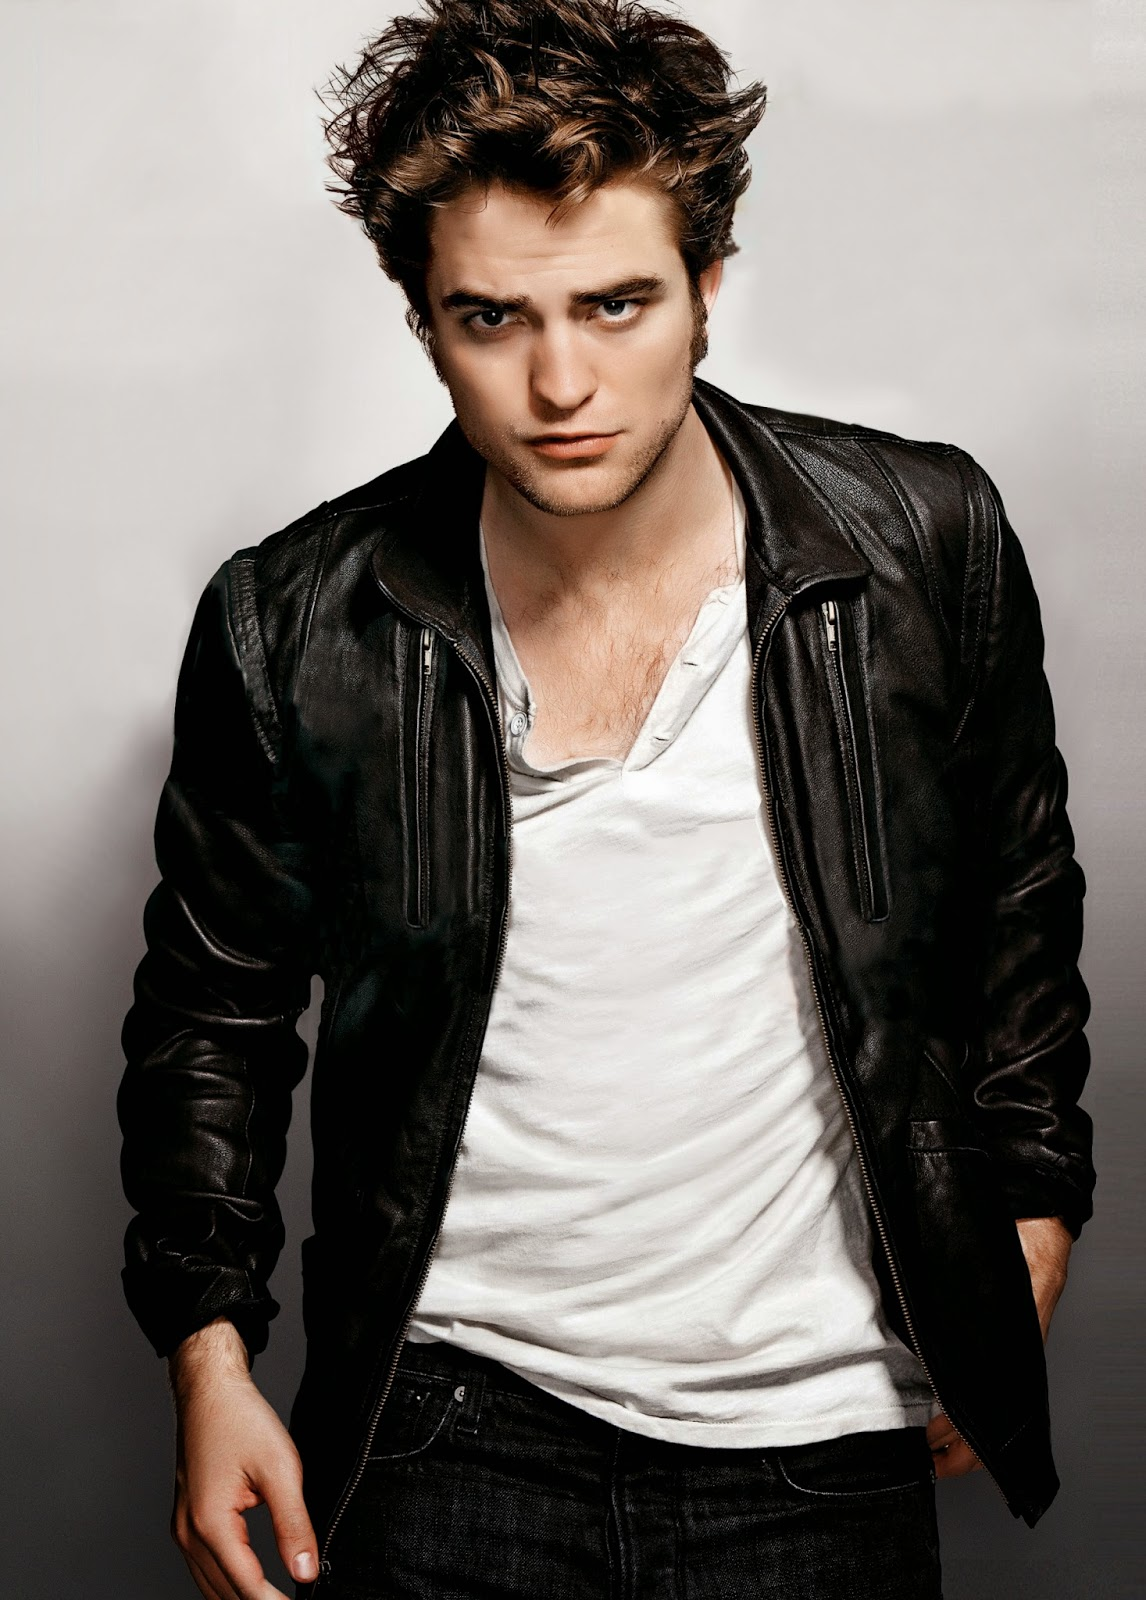 robert pattinson - photo #3